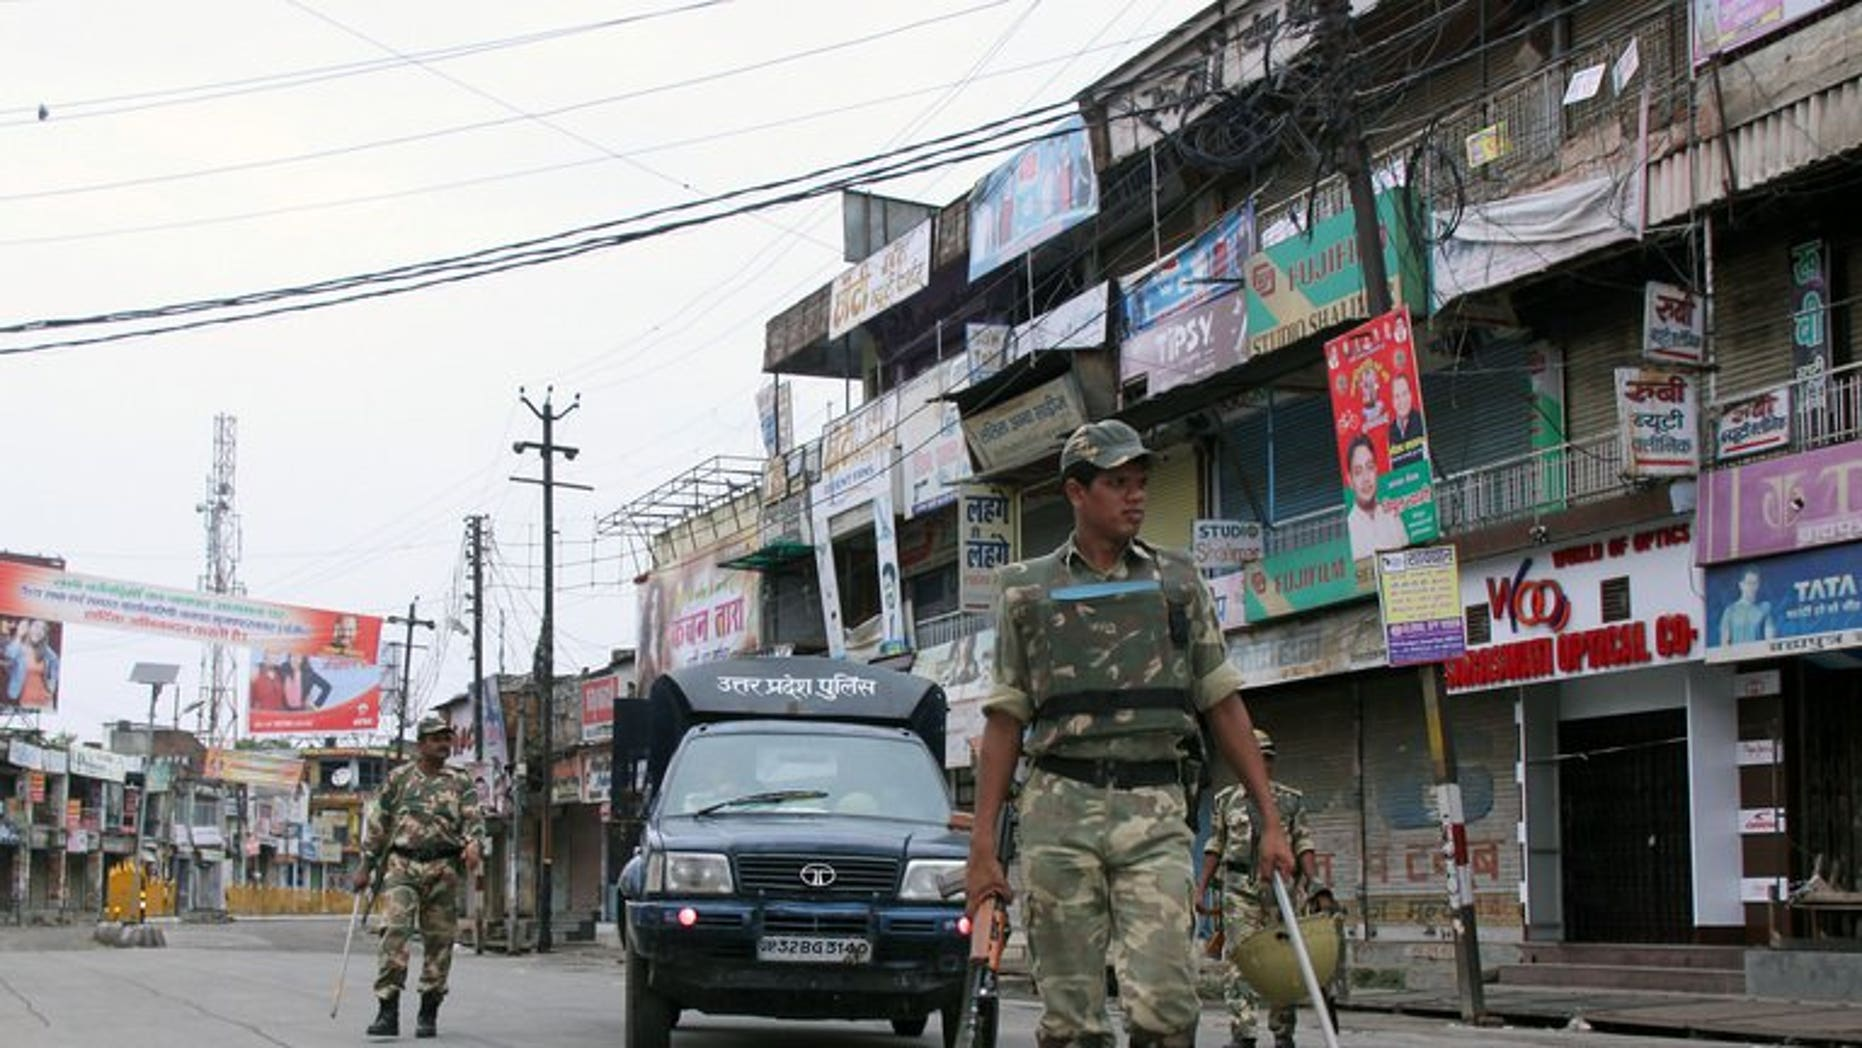 Indian soldiers patrol alongside a state police vehicle on a deserted street following communal riots between Muslims and Hindus in Muzaffarnagar, India's Uttar Pradesh state, on September 8, 2013.